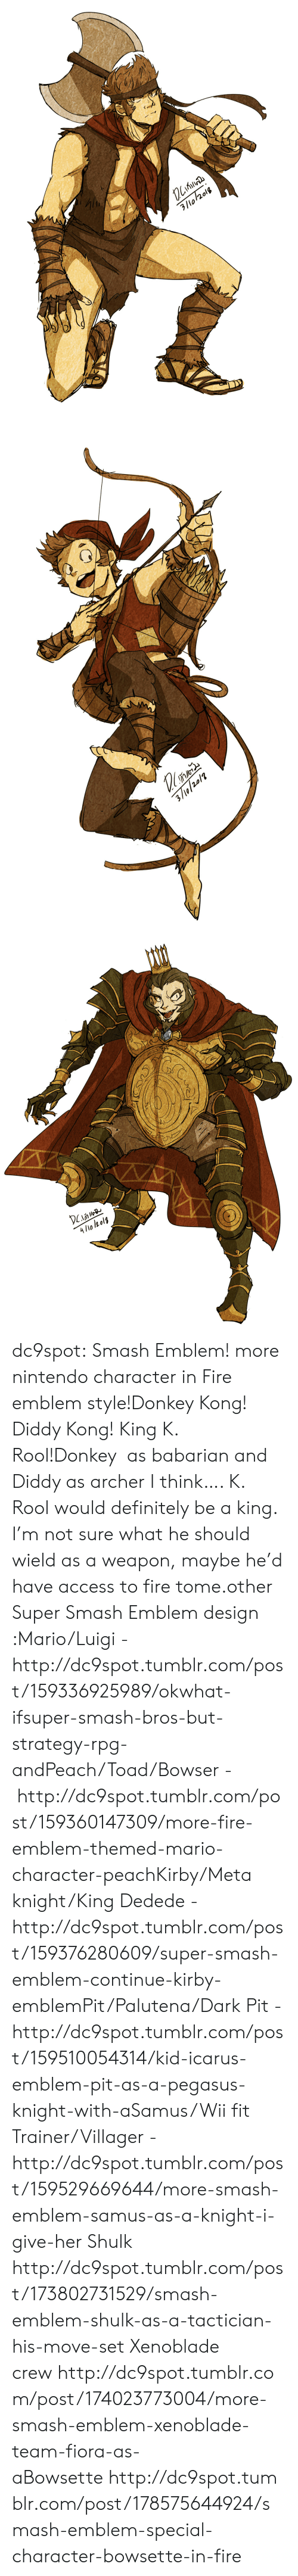 Bowser, Definitely, and Donkey: 3/lo/2018   3/9/20/2   4/lo l2 olg dc9spot:  Smash Emblem! more nintendo character in Fire emblem style!Donkey Kong! Diddy Kong! King K. Rool!Donkey  as babarian and Diddy as archer I think…. K. Rool would definitely be a king. I'm not sure what he should wield as a weapon, maybe he'd have access to fire tome.other Super Smash Emblem design :Mario/Luigi - http://dc9spot.tumblr.com/post/159336925989/okwhat-ifsuper-smash-bros-but-strategy-rpg-andPeach/Toad/Bowser -  http://dc9spot.tumblr.com/post/159360147309/more-fire-emblem-themed-mario-character-peachKirby/Meta knight/King Dedede - http://dc9spot.tumblr.com/post/159376280609/super-smash-emblem-continue-kirby-emblemPit/Palutena/Dark Pit - http://dc9spot.tumblr.com/post/159510054314/kid-icarus-emblem-pit-as-a-pegasus-knight-with-aSamus/Wii fit Trainer/Villager - http://dc9spot.tumblr.com/post/159529669644/more-smash-emblem-samus-as-a-knight-i-give-her  Shulk http://dc9spot.tumblr.com/post/173802731529/smash-emblem-shulk-as-a-tactician-his-move-set  Xenoblade crew http://dc9spot.tumblr.com/post/174023773004/more-smash-emblem-xenoblade-team-fiora-as-aBowsette http://dc9spot.tumblr.com/post/178575644924/smash-emblem-special-character-bowsette-in-fire